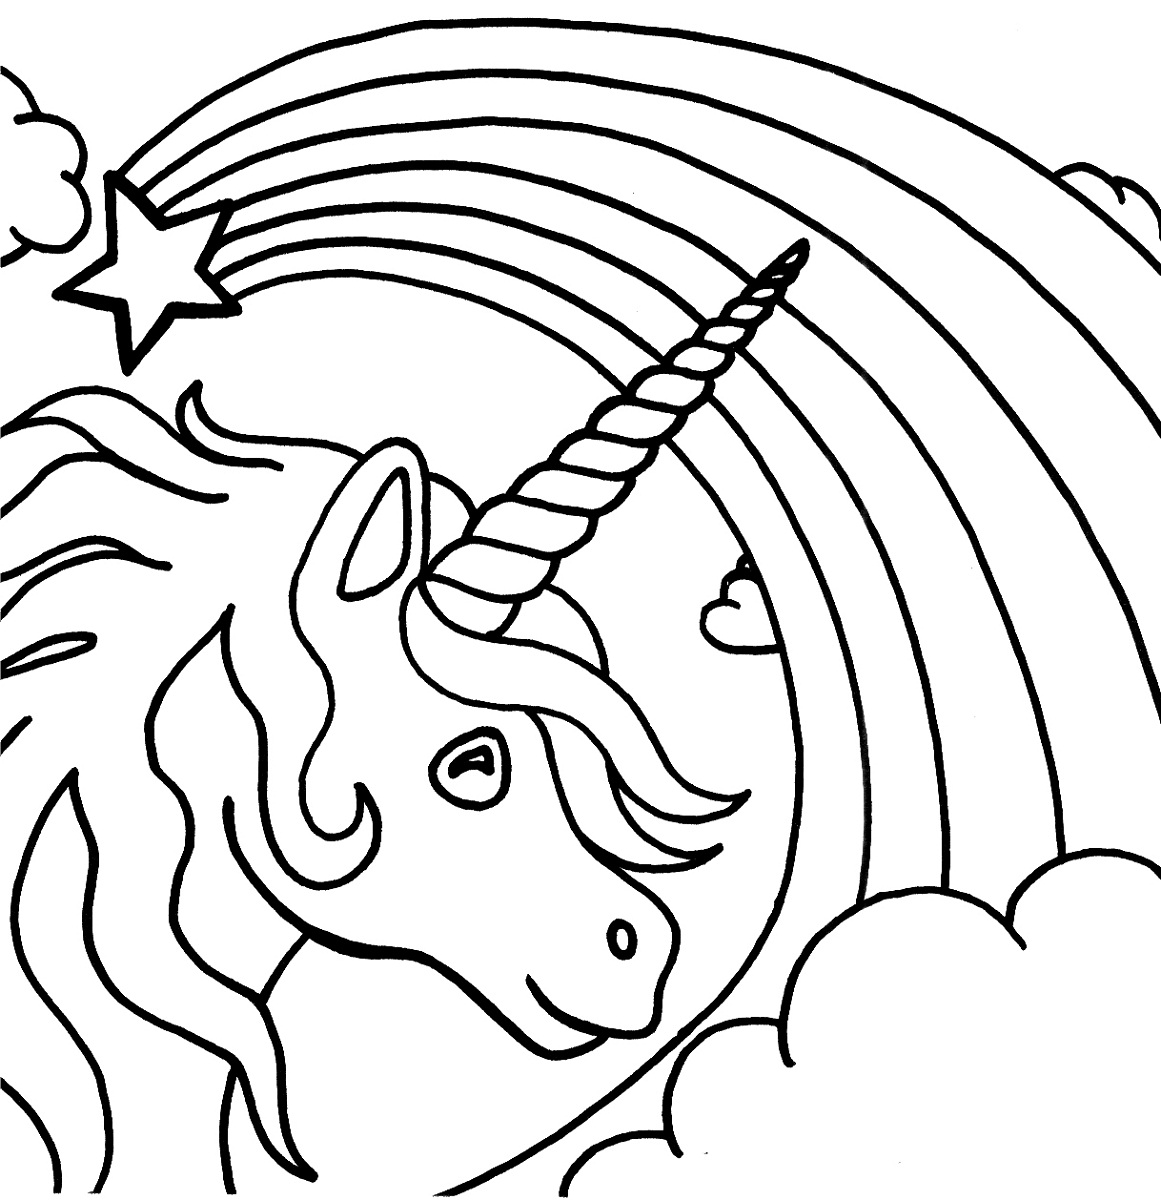 images for coloring for toddlers 8 children39s coloring pages free premium templates for toddlers images coloring for